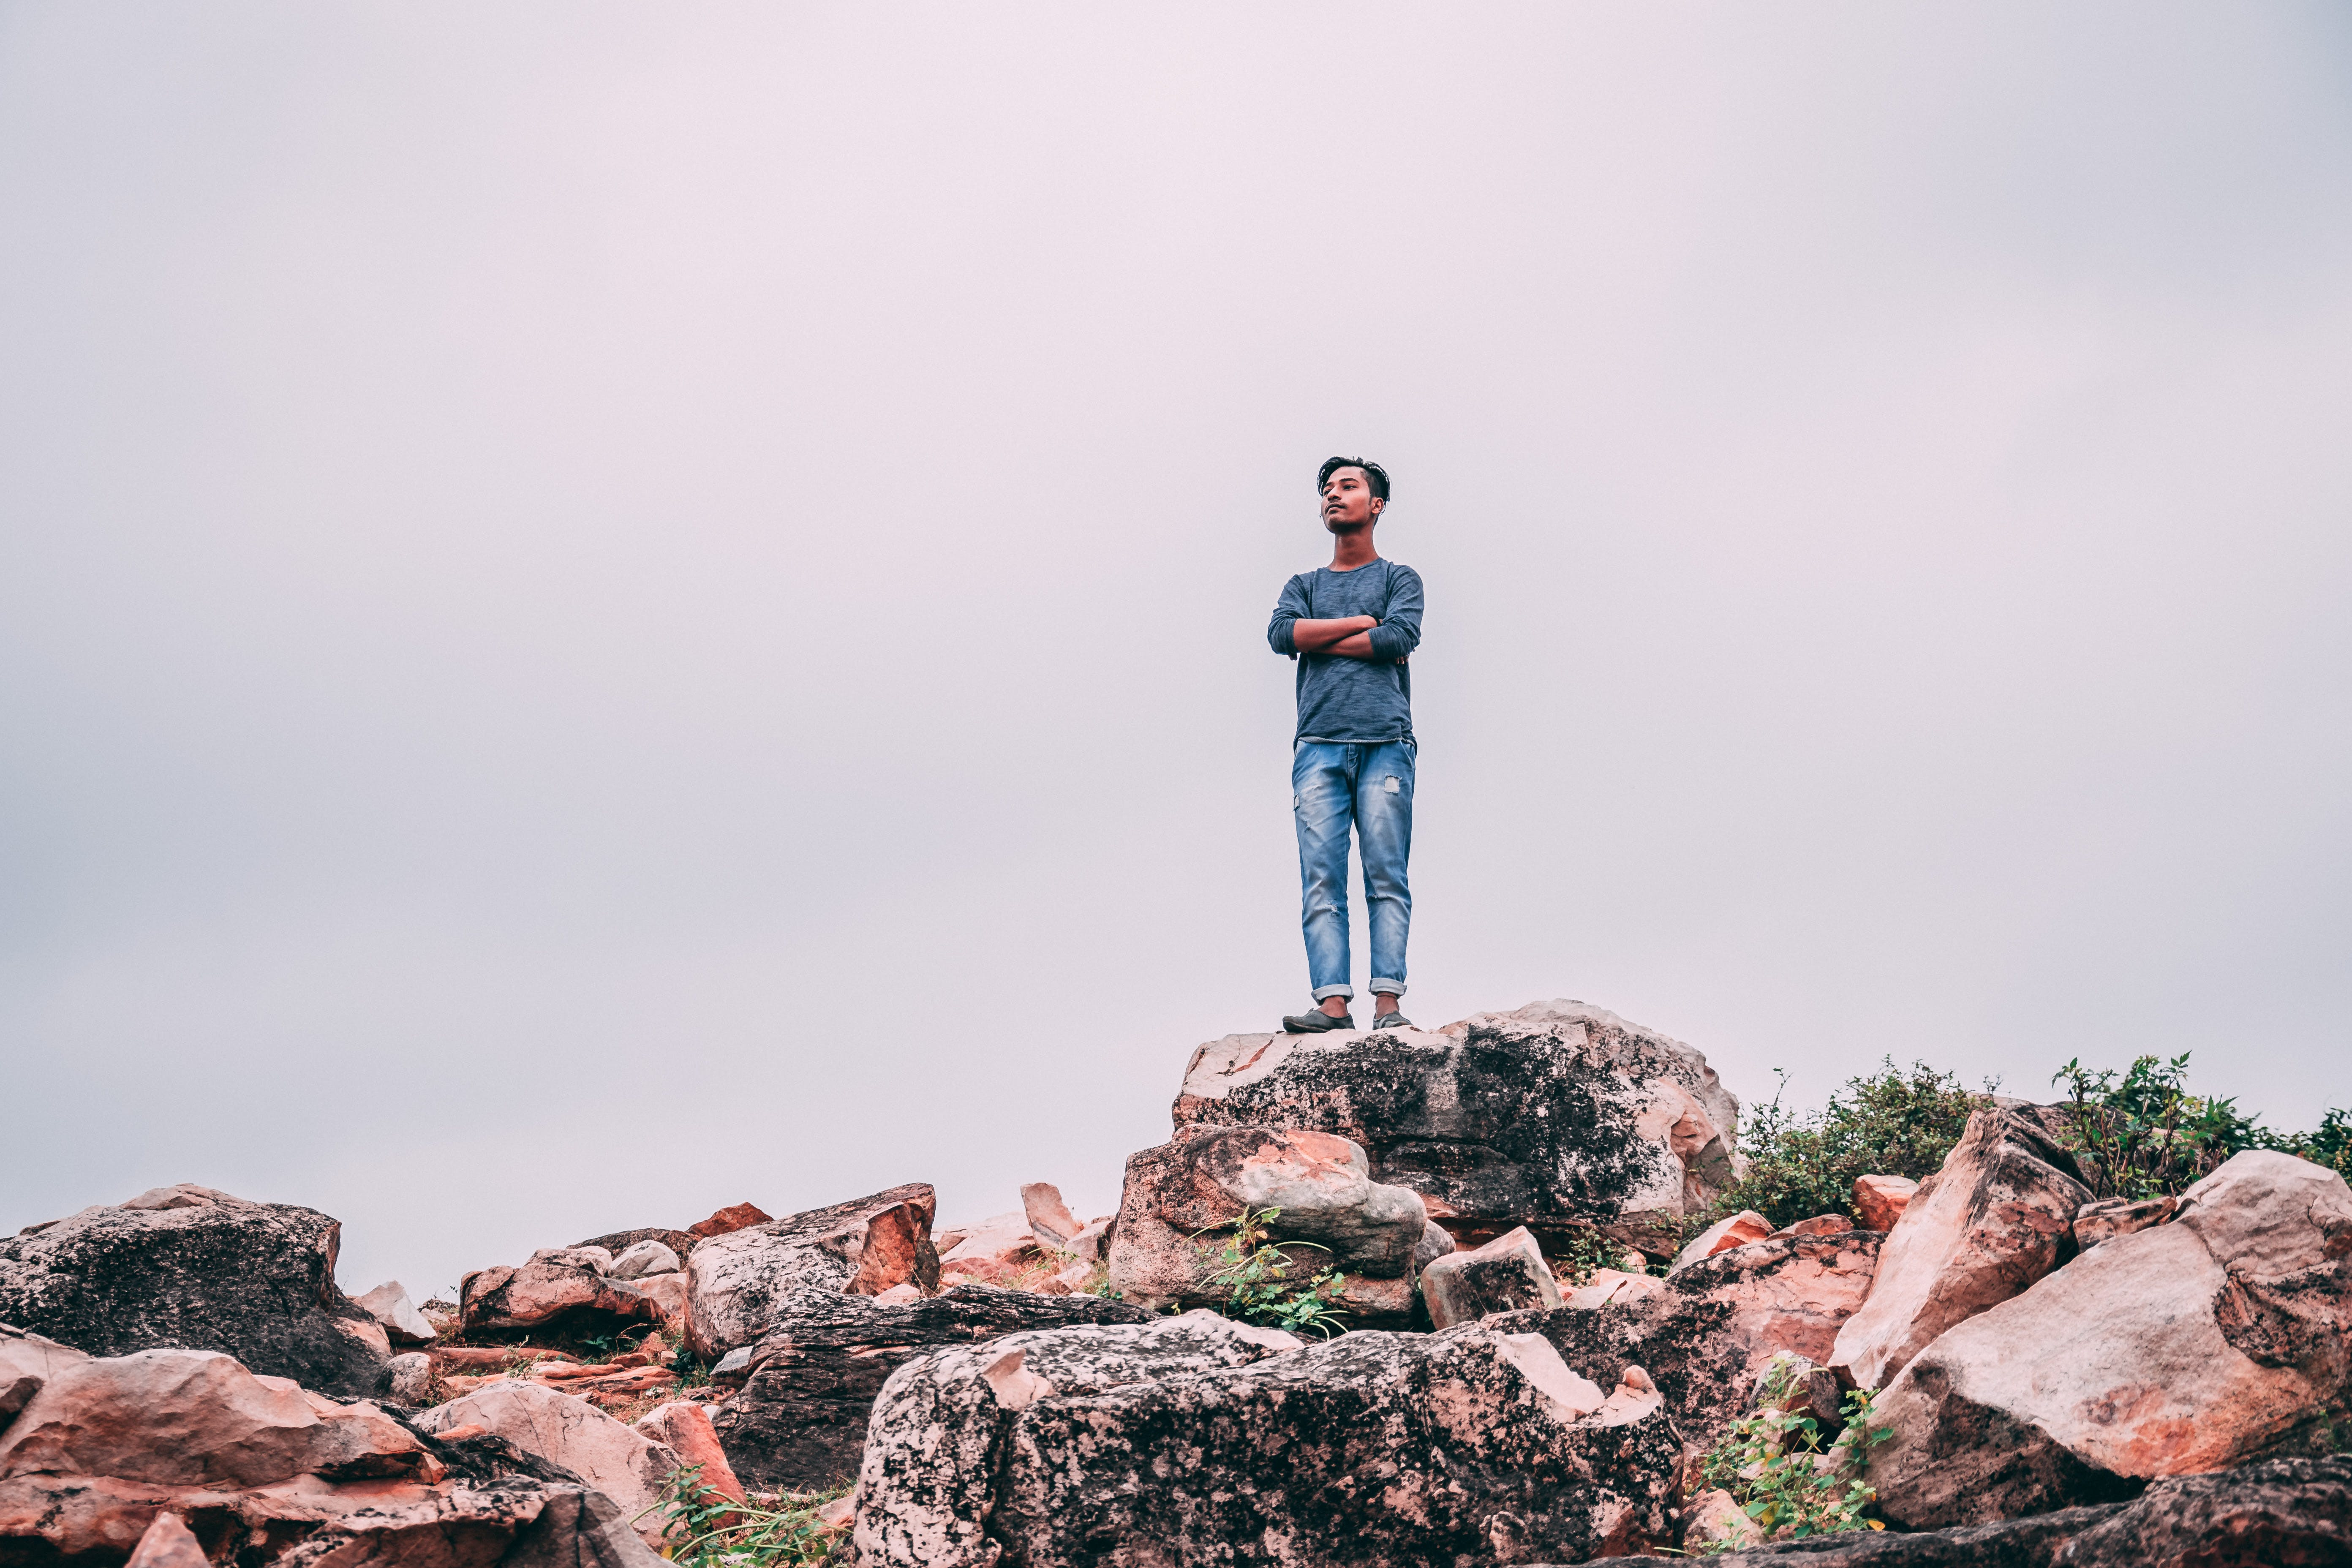 Man Standing On Rock